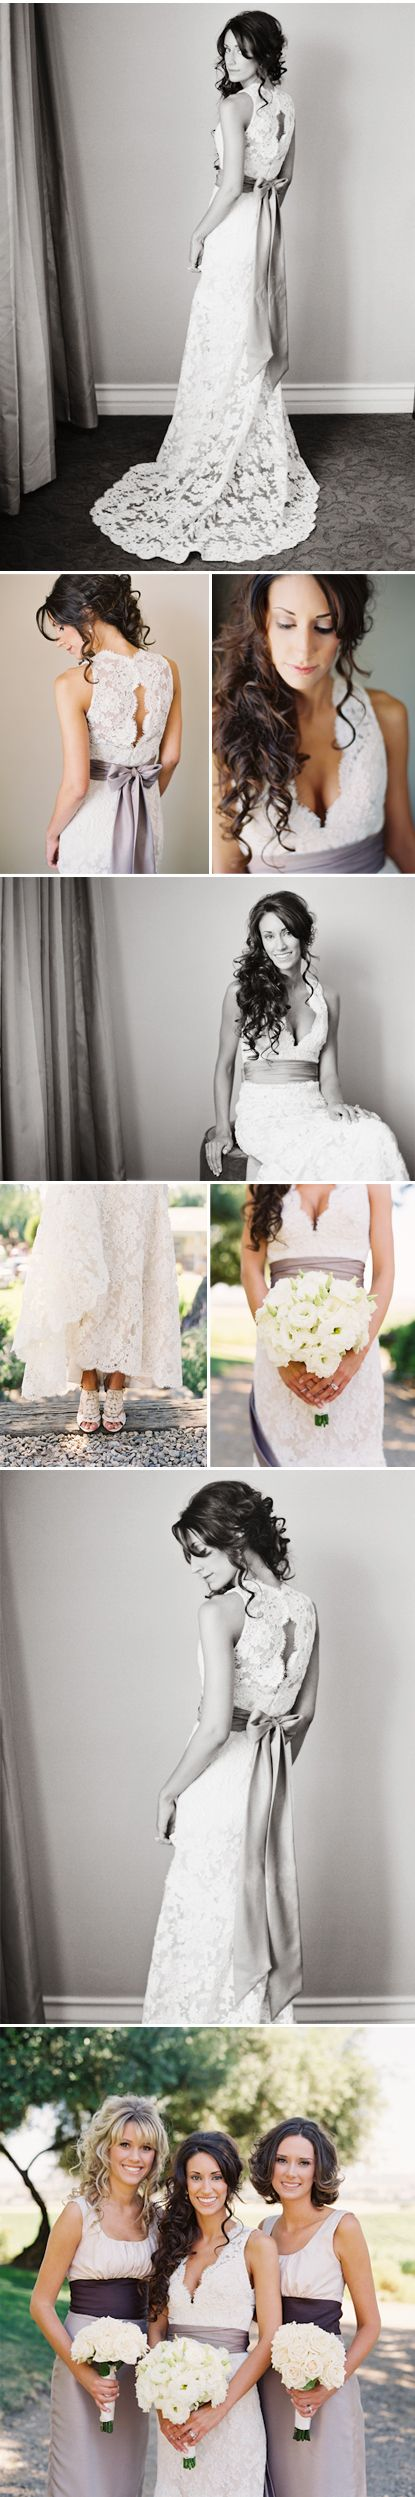 love this lace gownWedding Dressses, Bridesmaid Dresses, Brides Dresses, Lace Wedding, Beautiful Dresses, Dreams Dresses, Bride Dresses, Lace Dresses, Lace Gowns